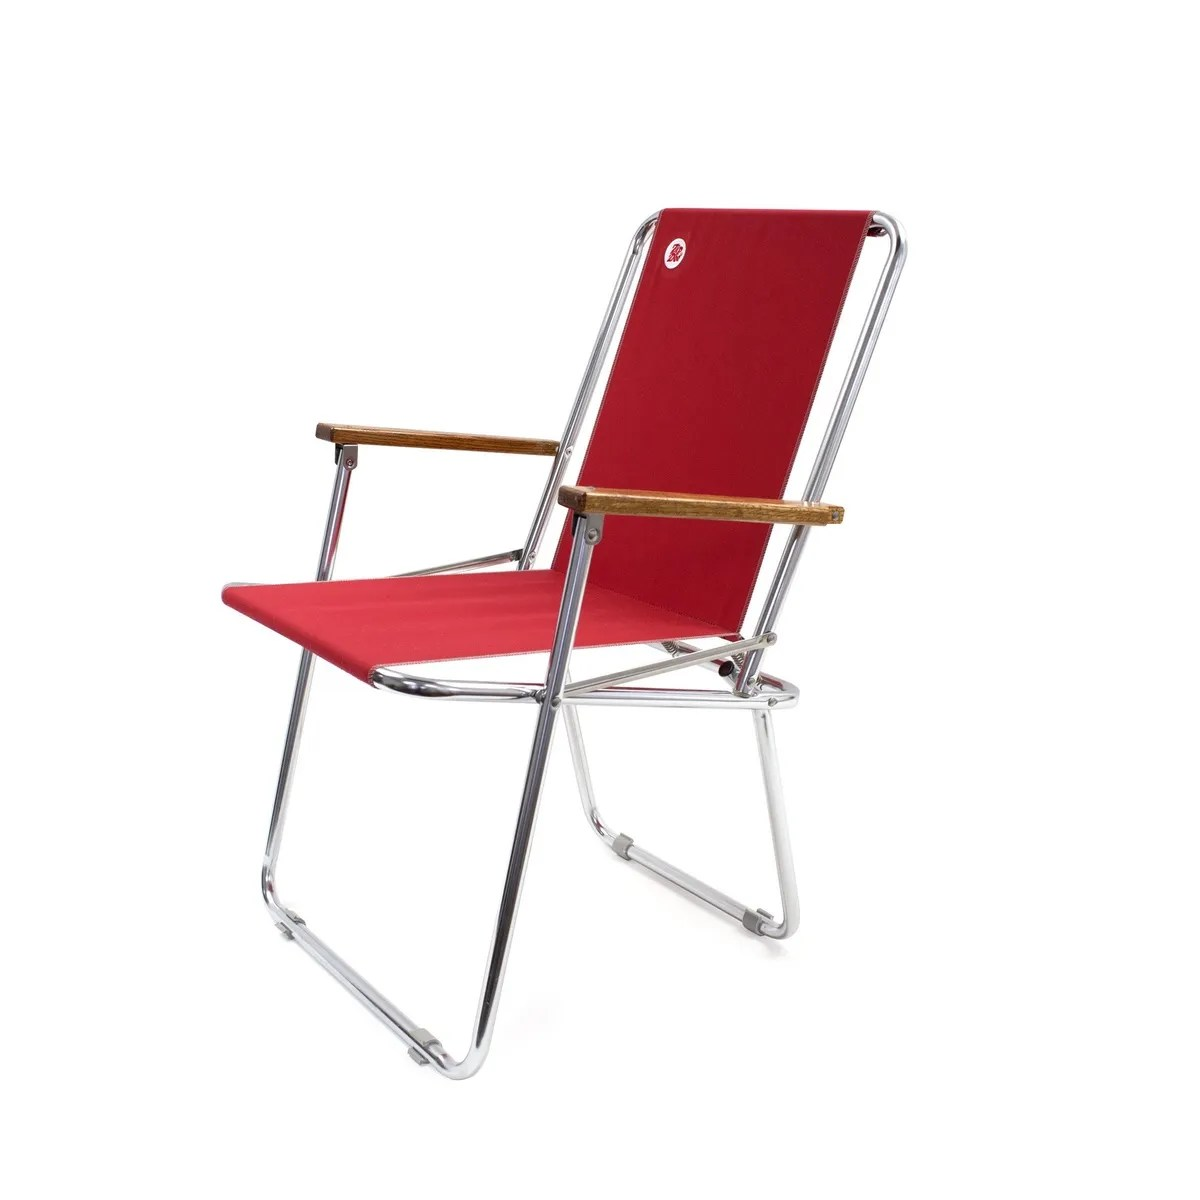 zip dee chairs professional office camping gear has never looked better photos gq